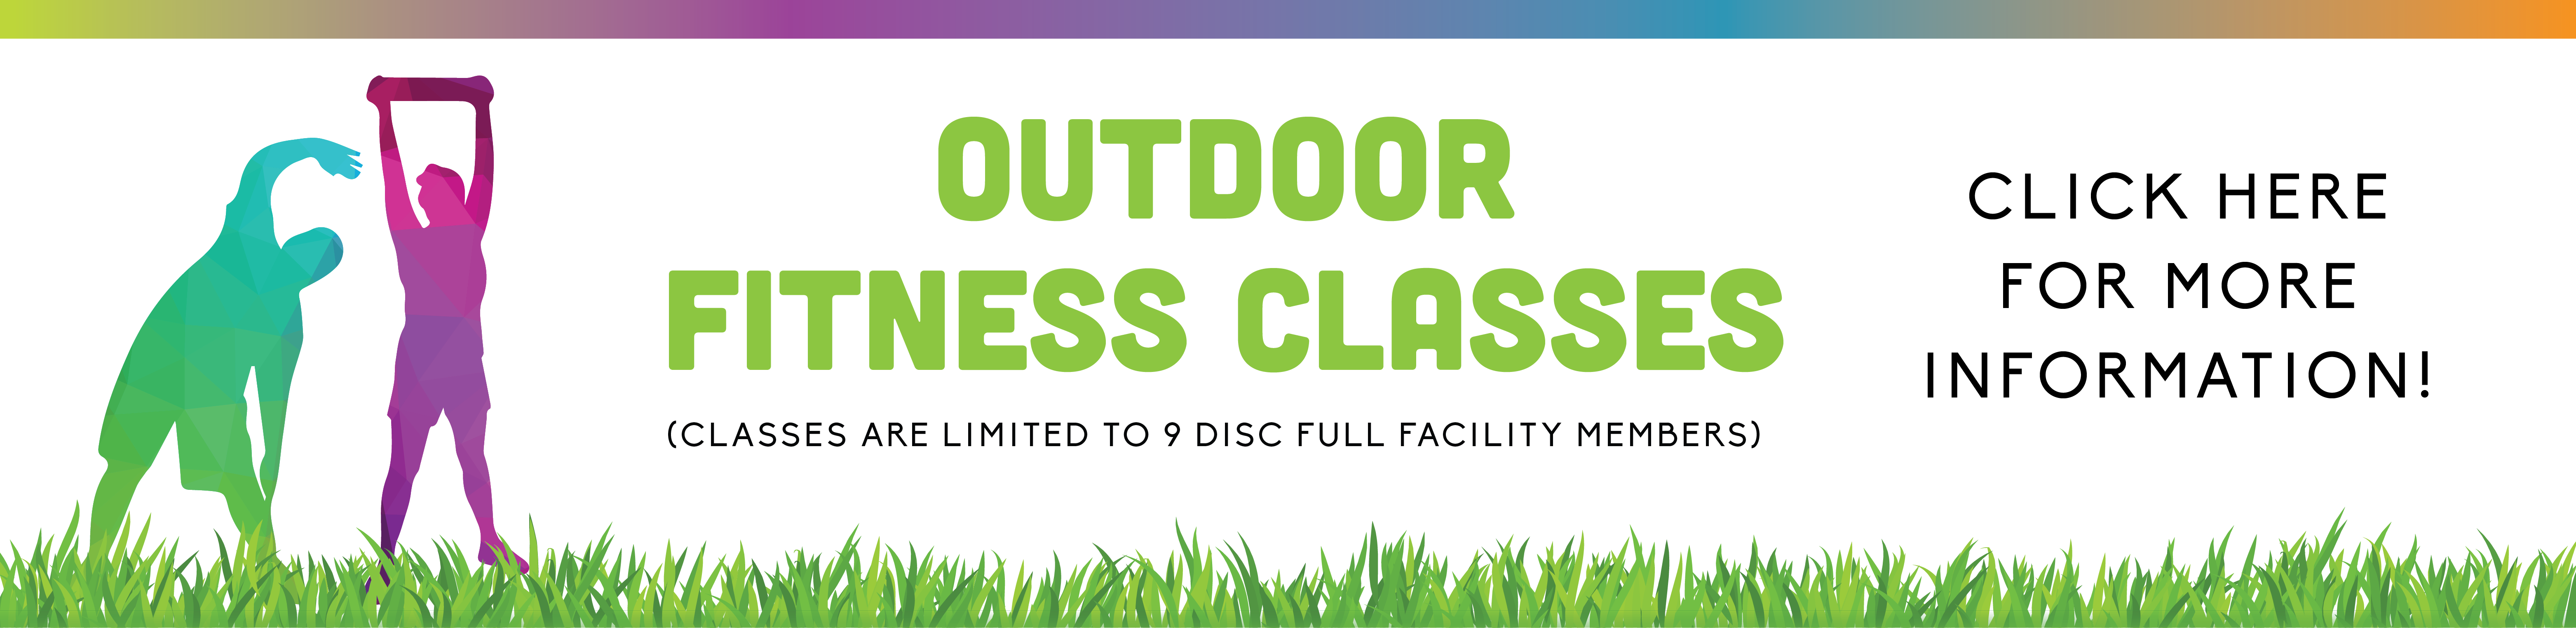 Outdoor_Fitness Classes-01